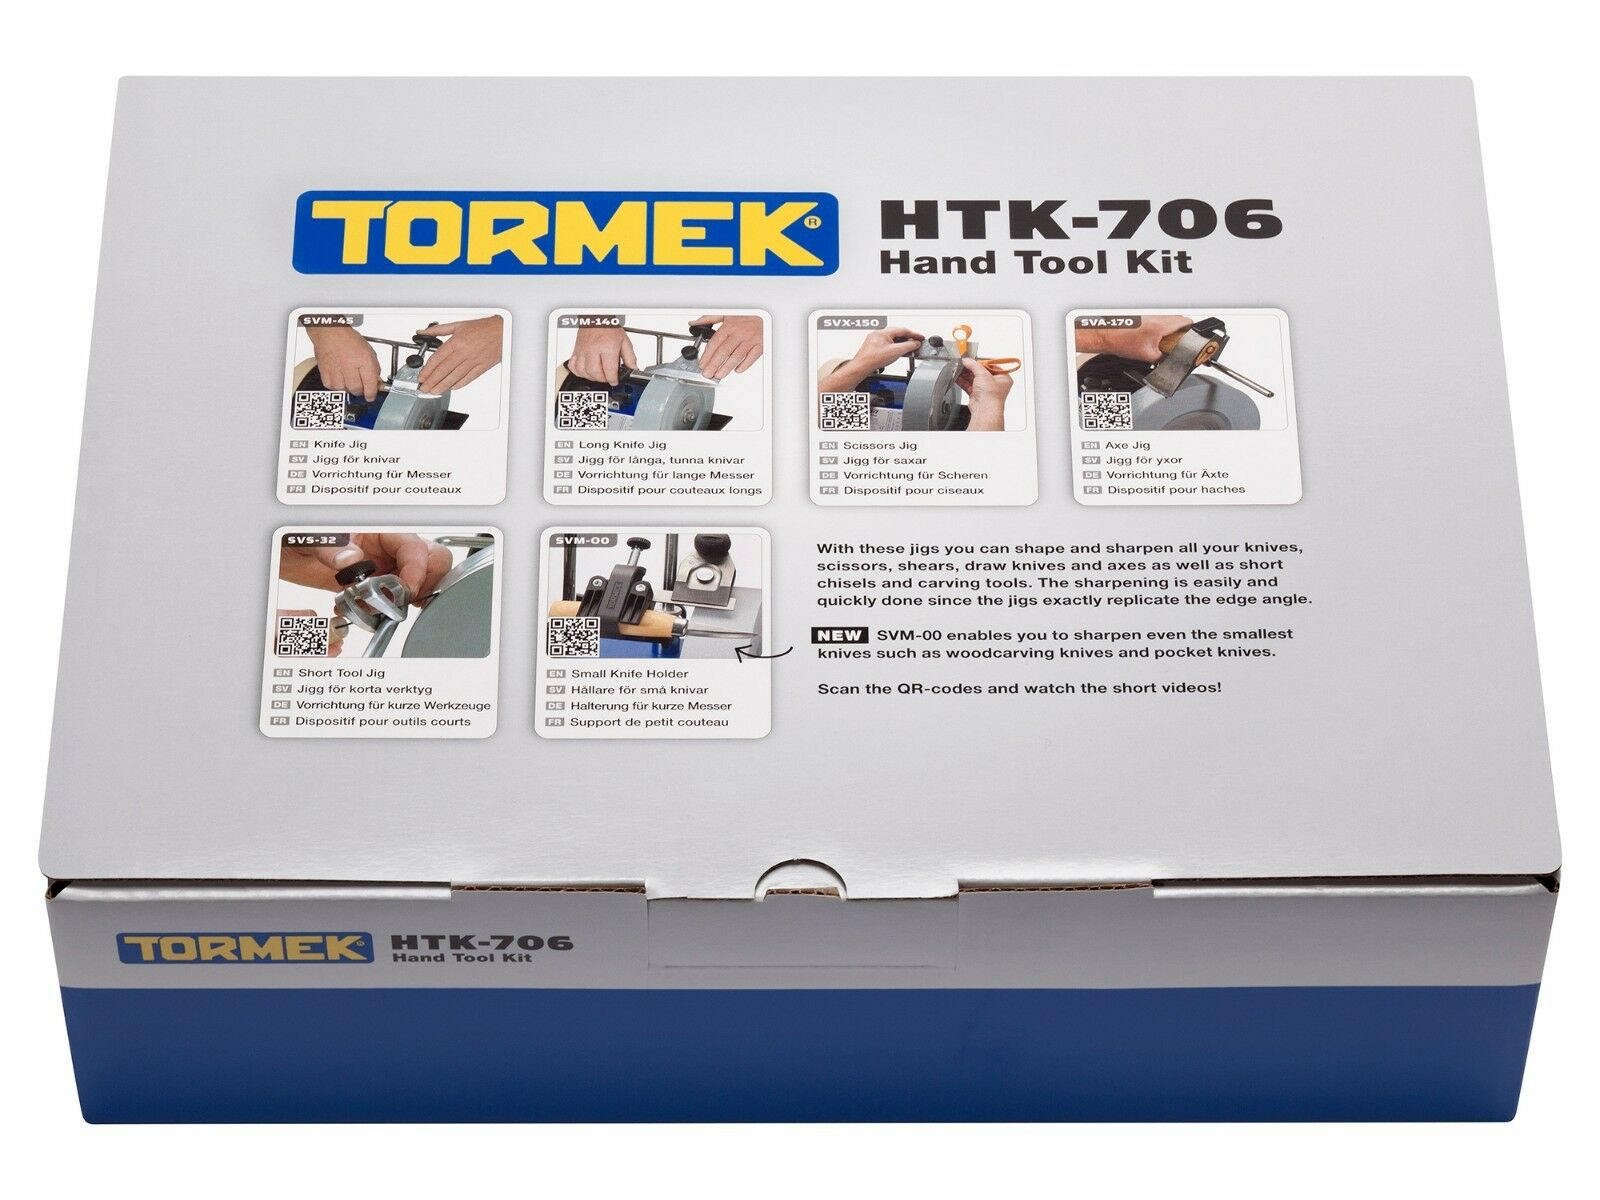 TORMEK HTK-706 HandTool Jigs Kit - Now Includes SVM-00 - Brand New